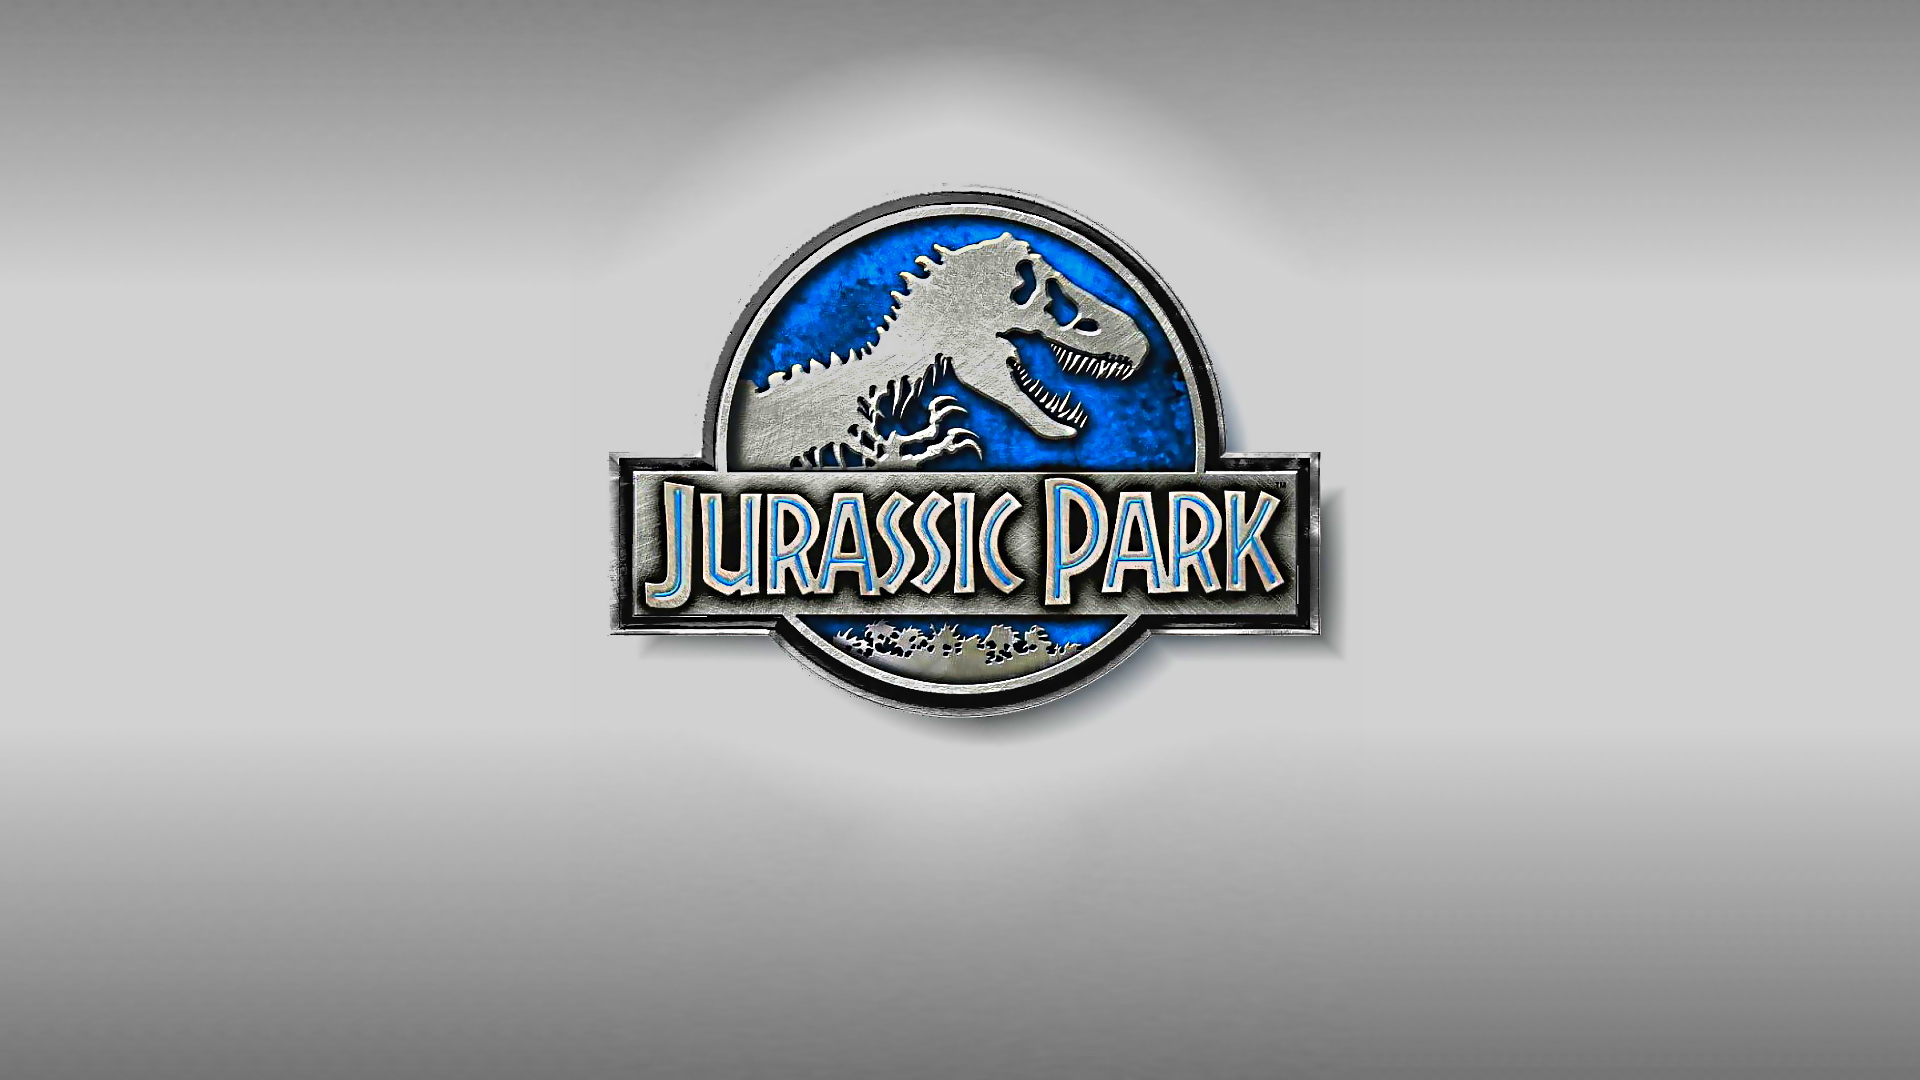 American Football Quotes Wallpaper Jurassic Park Logo Backgrounds Pixelstalk Net